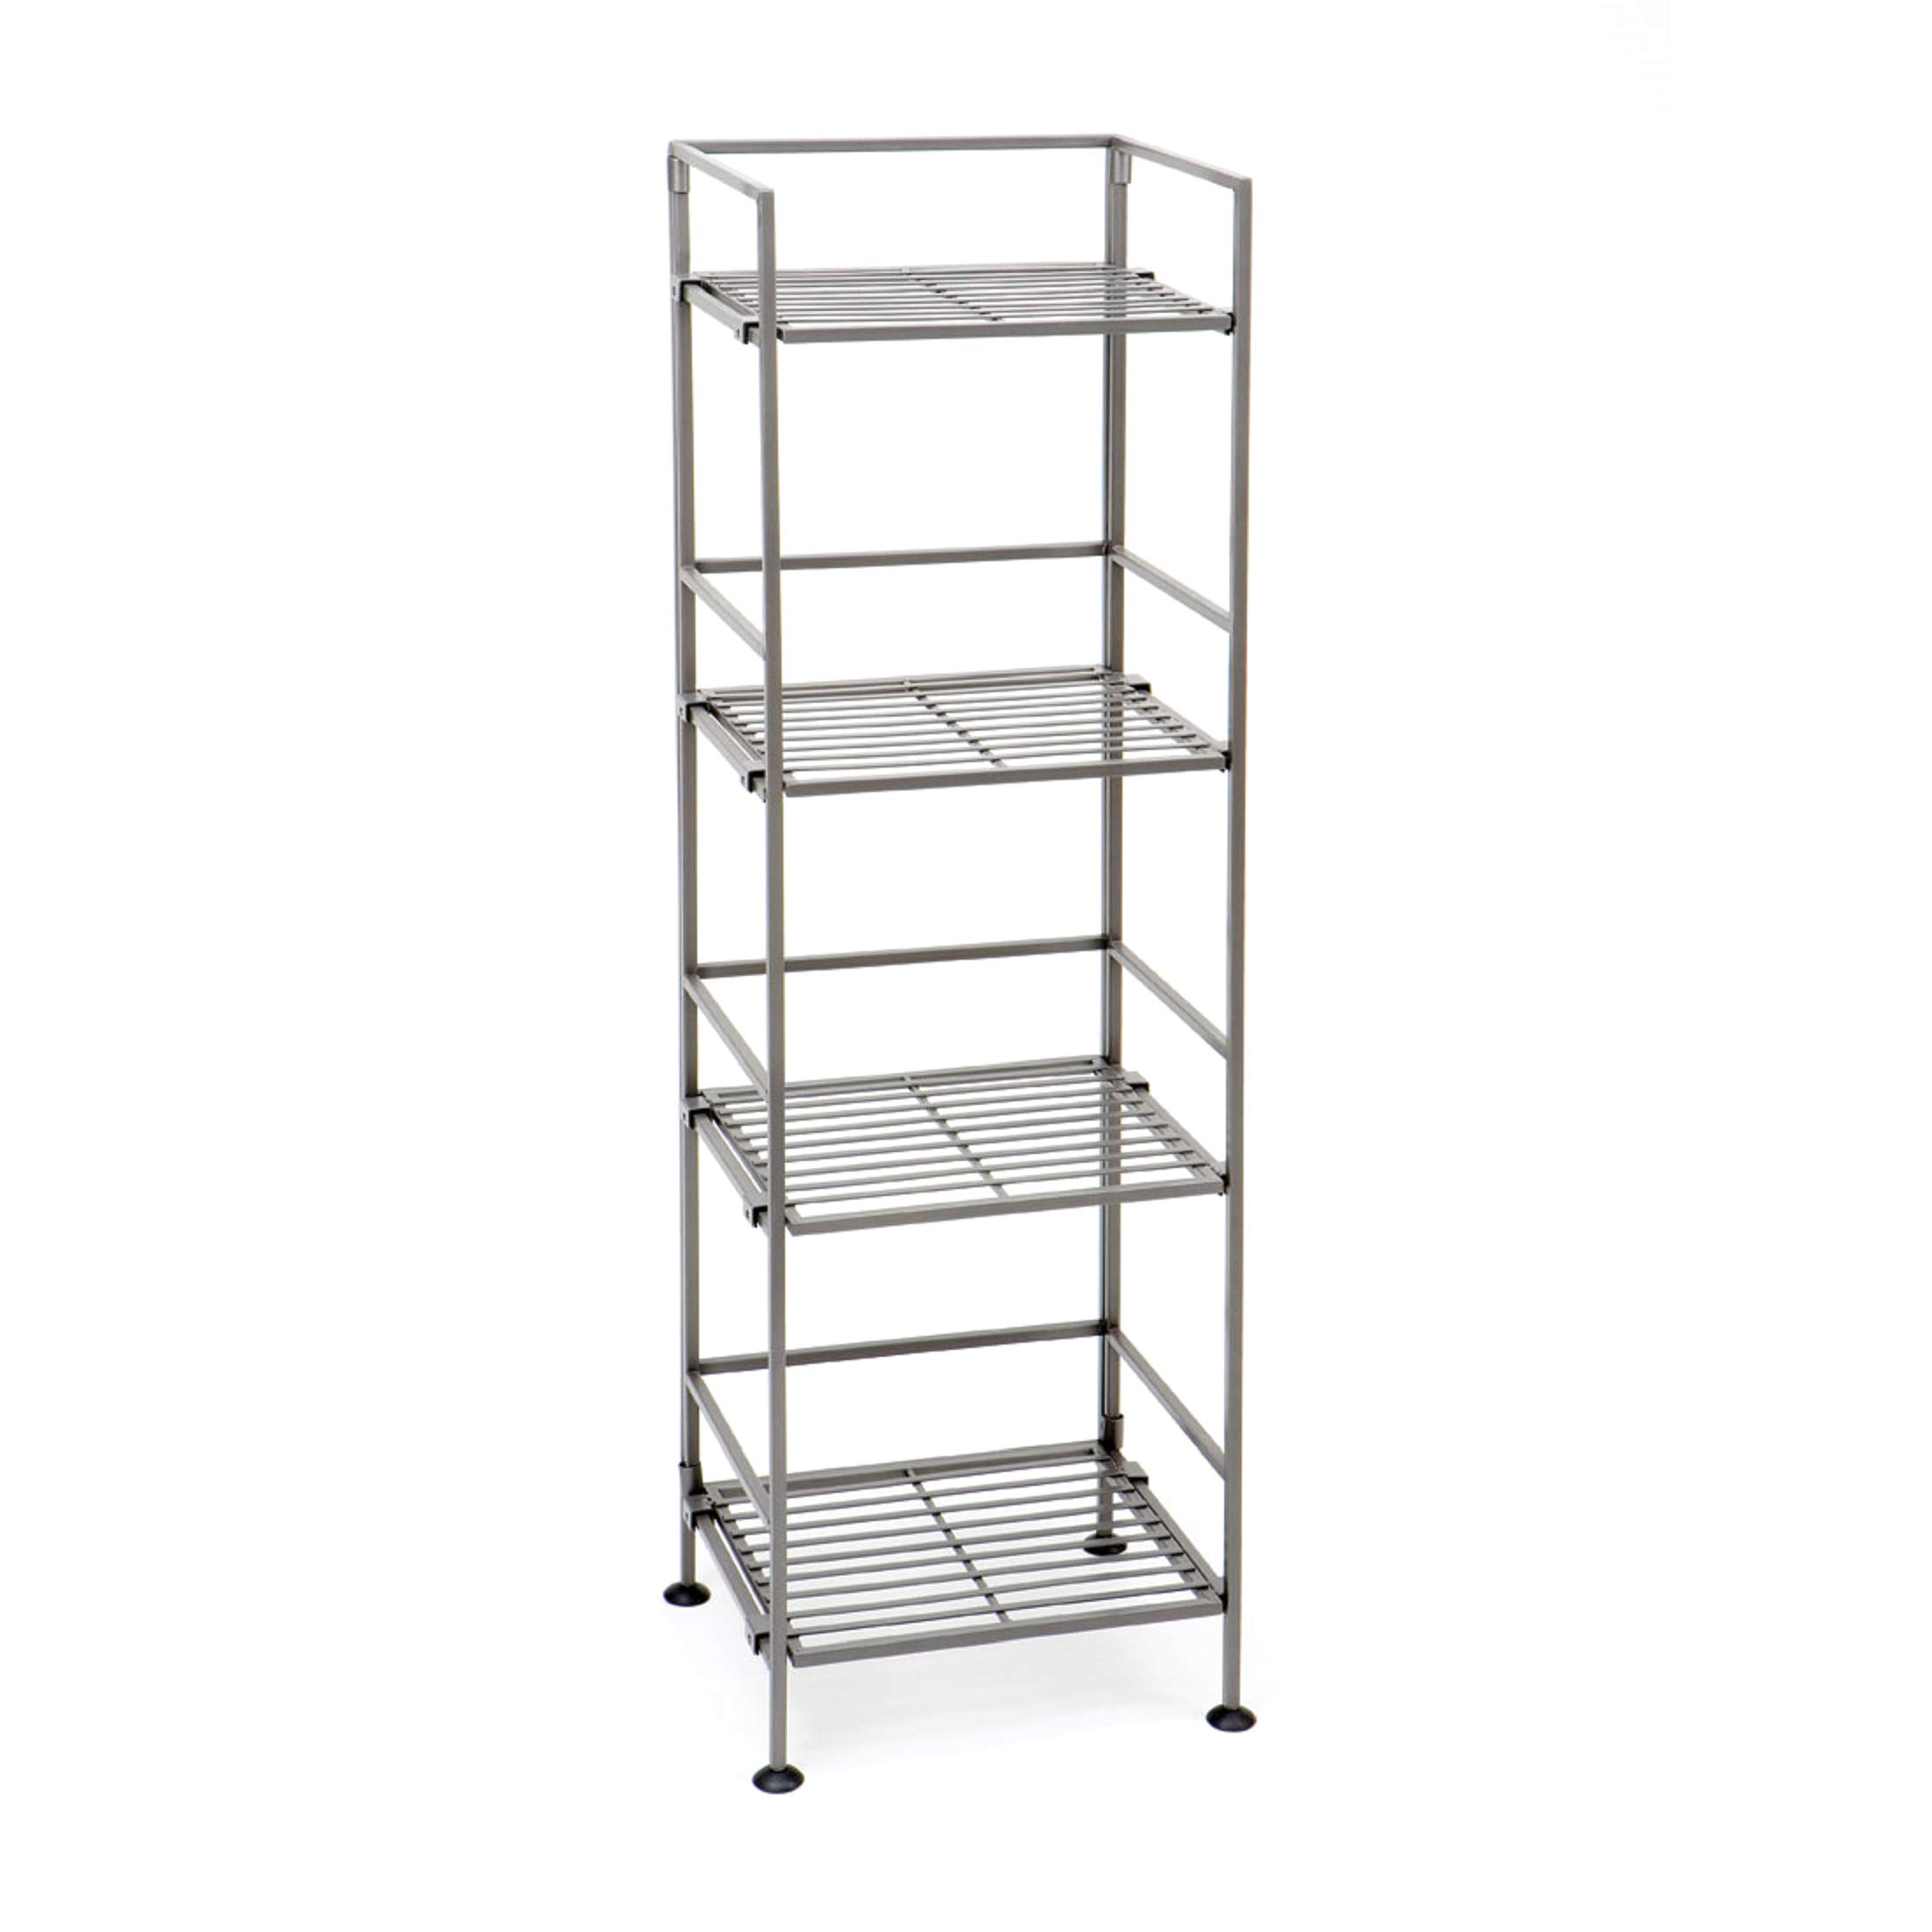 Seville Classics 4-Tier Iron Slat Tower Shelving, (Pewter) by Seville Classics